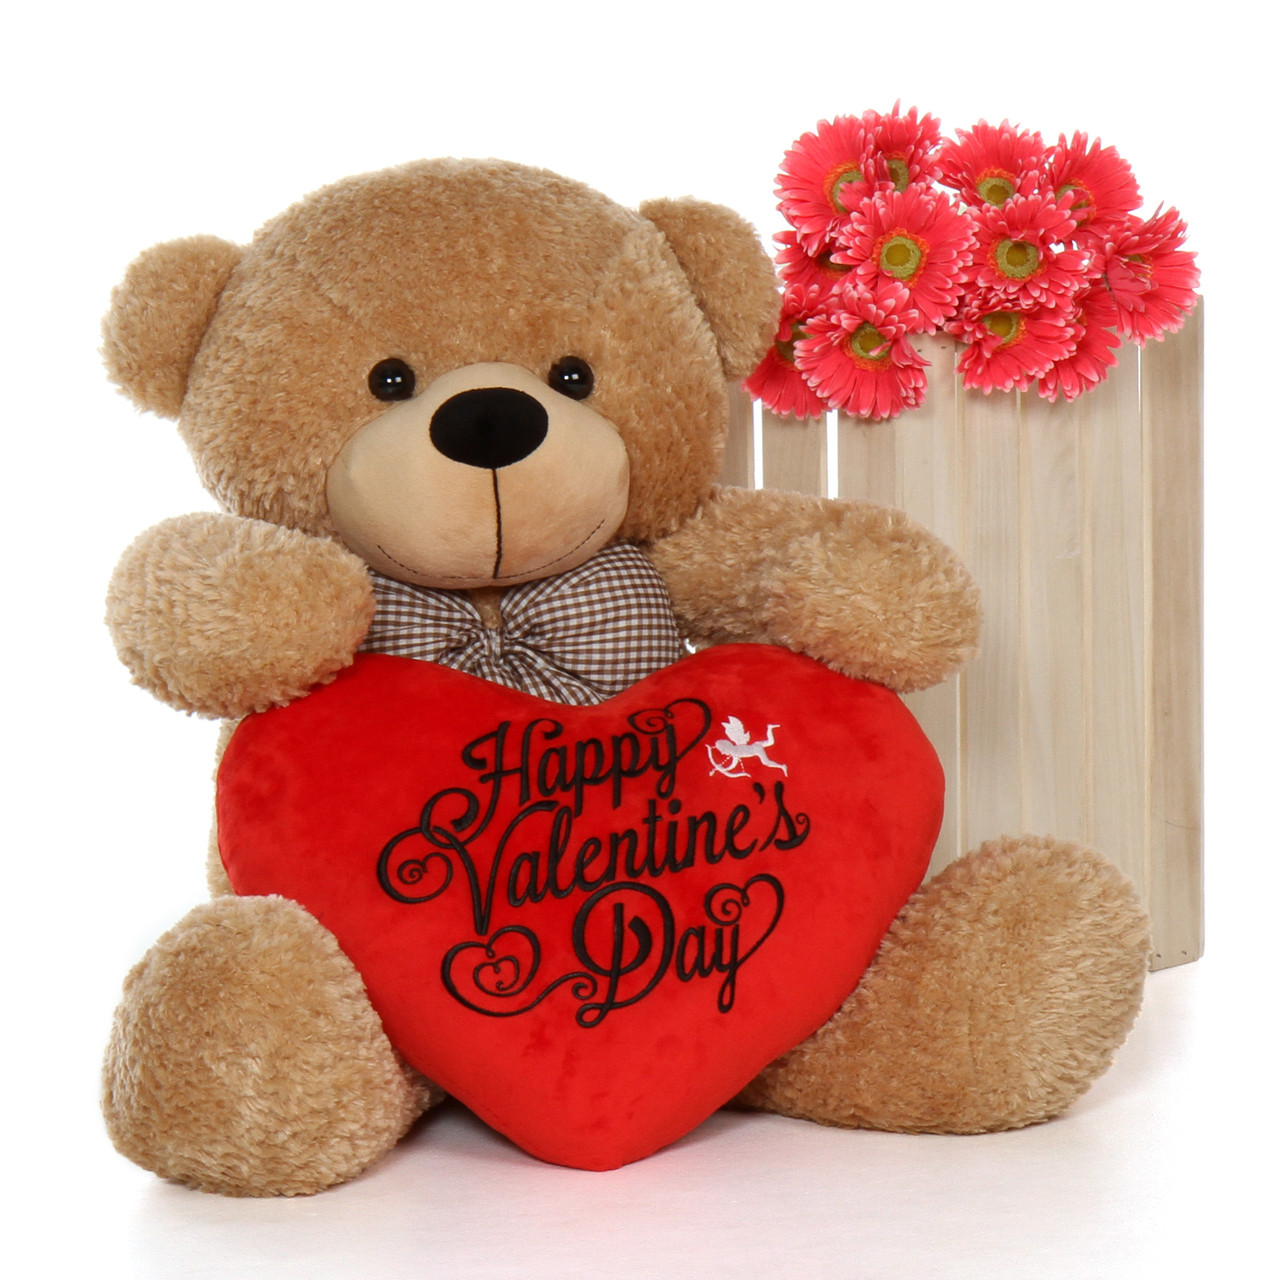 3 Foot Happy Valentine's Day Teddy Bear Shaggy Cuddles